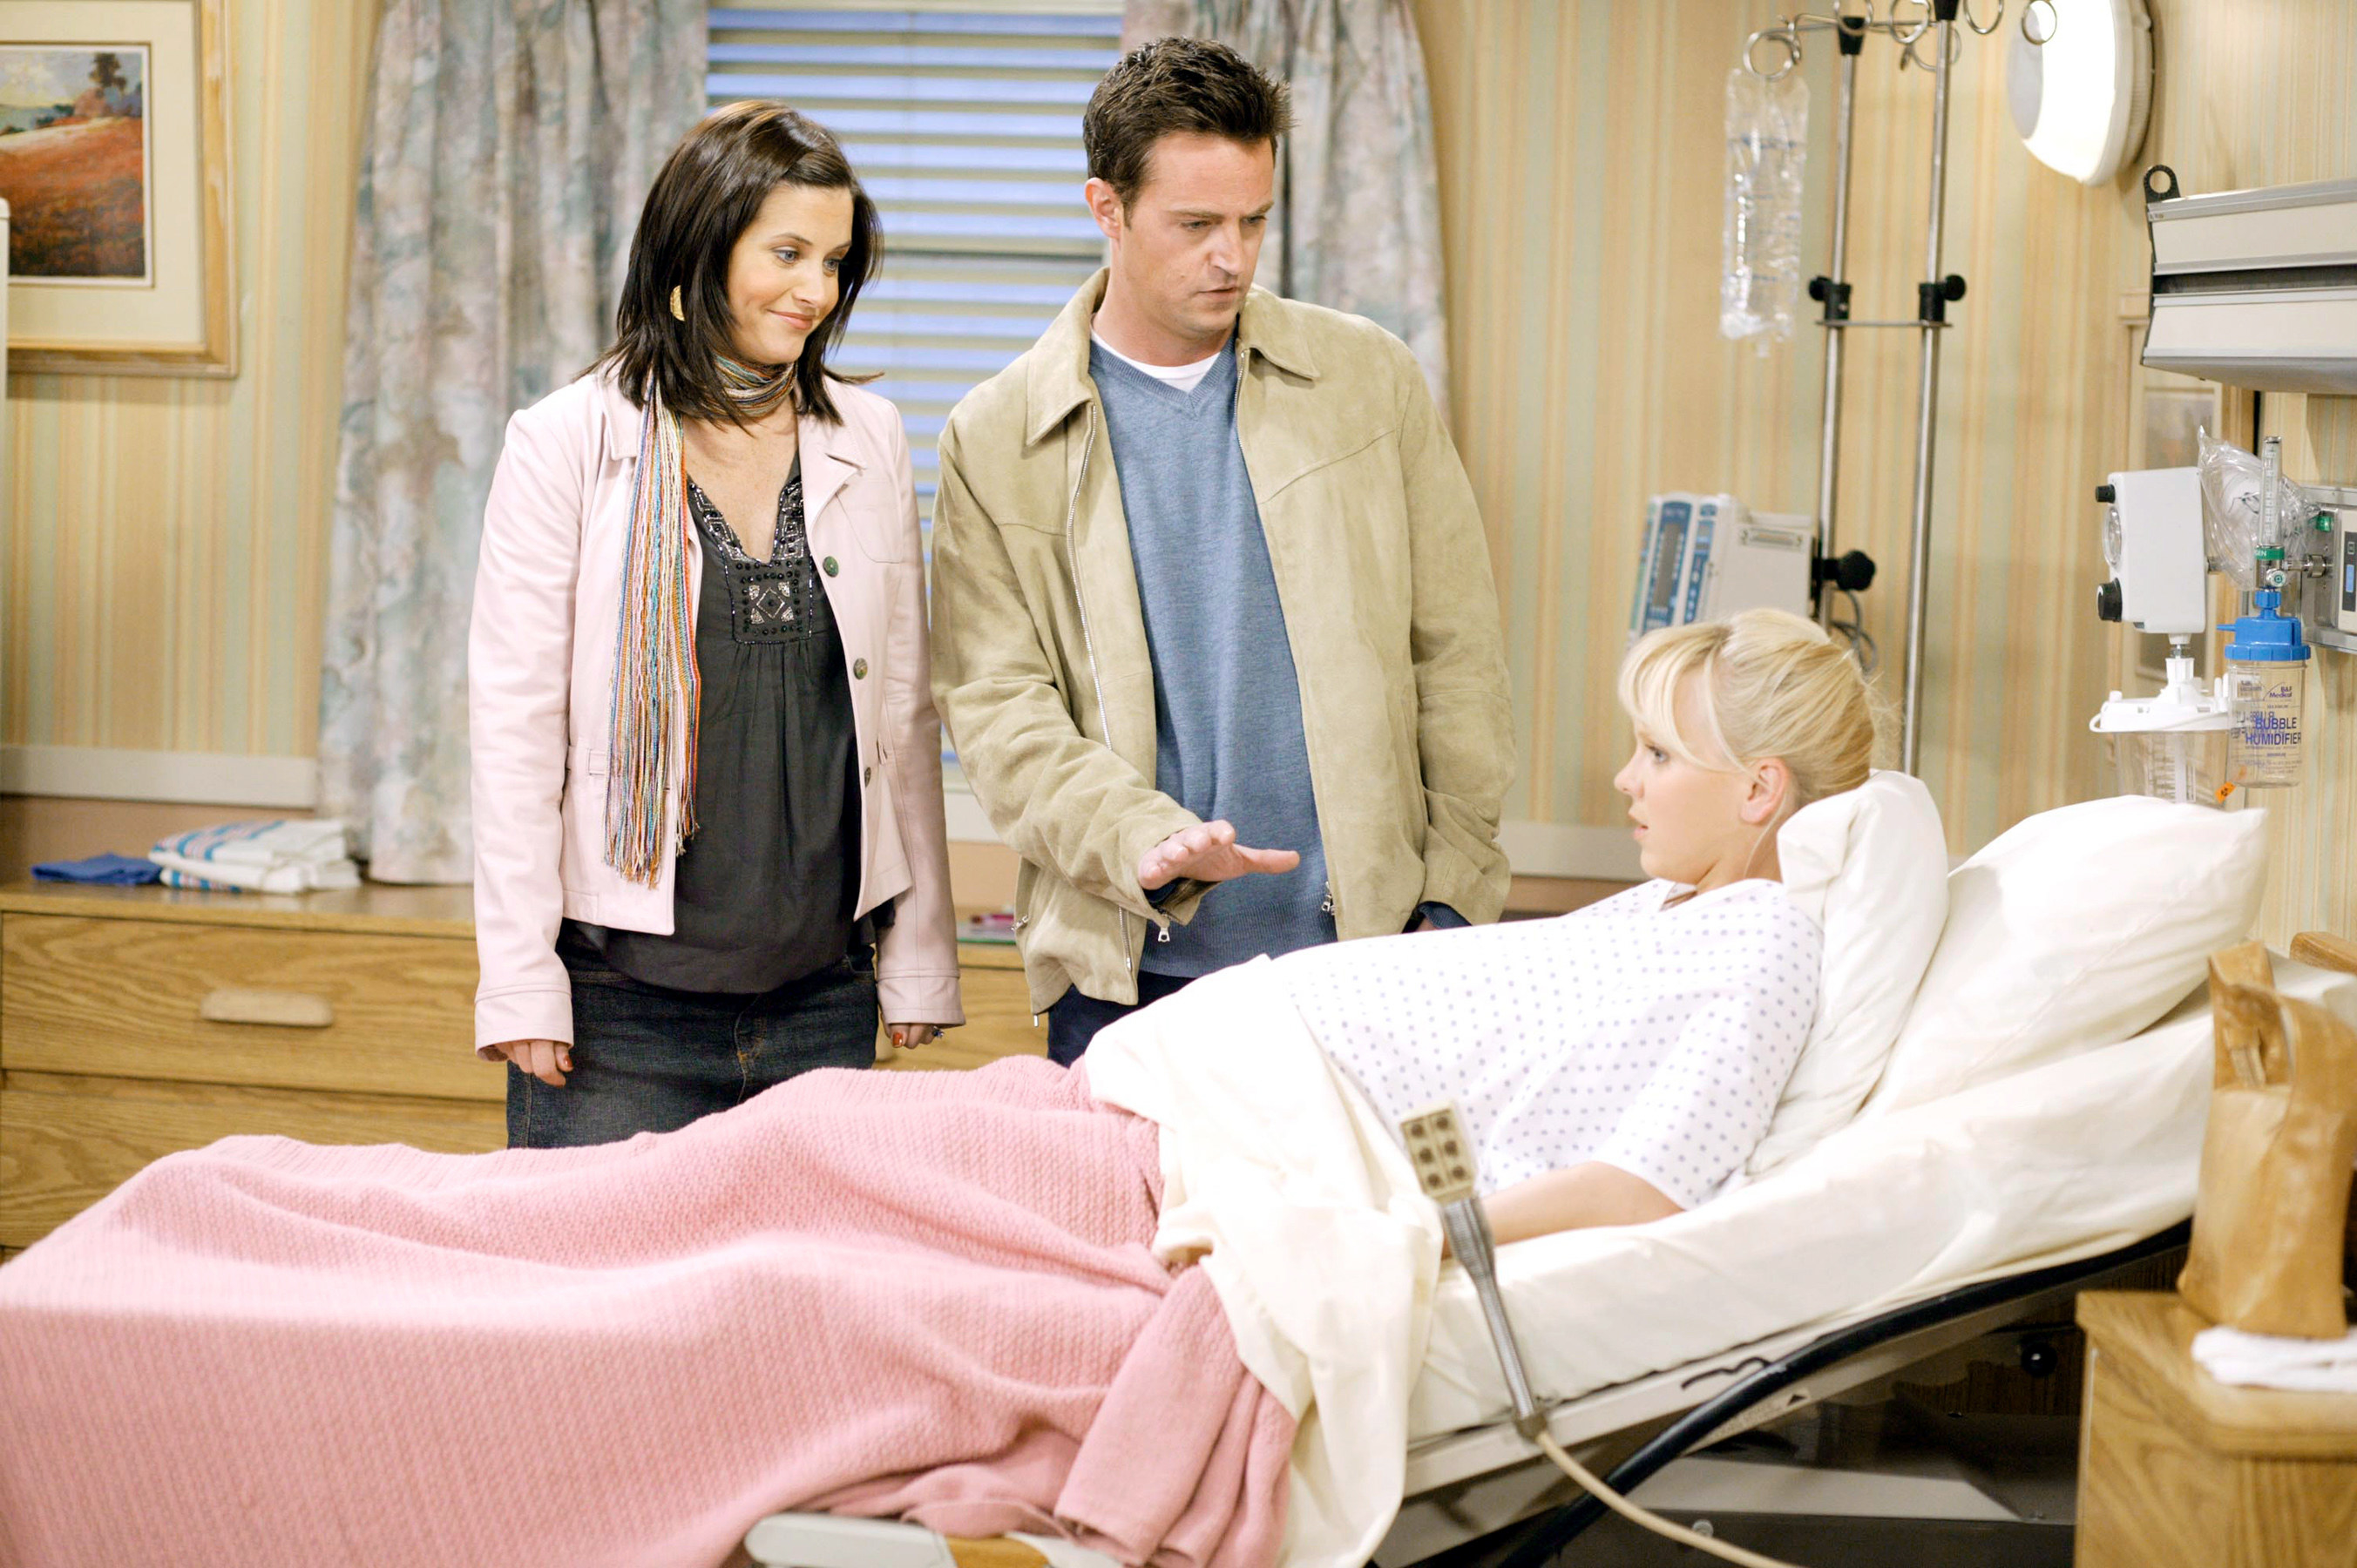 """Monica and Chandler visiting their surrogate, Erica in the hospital in """"Friends"""""""